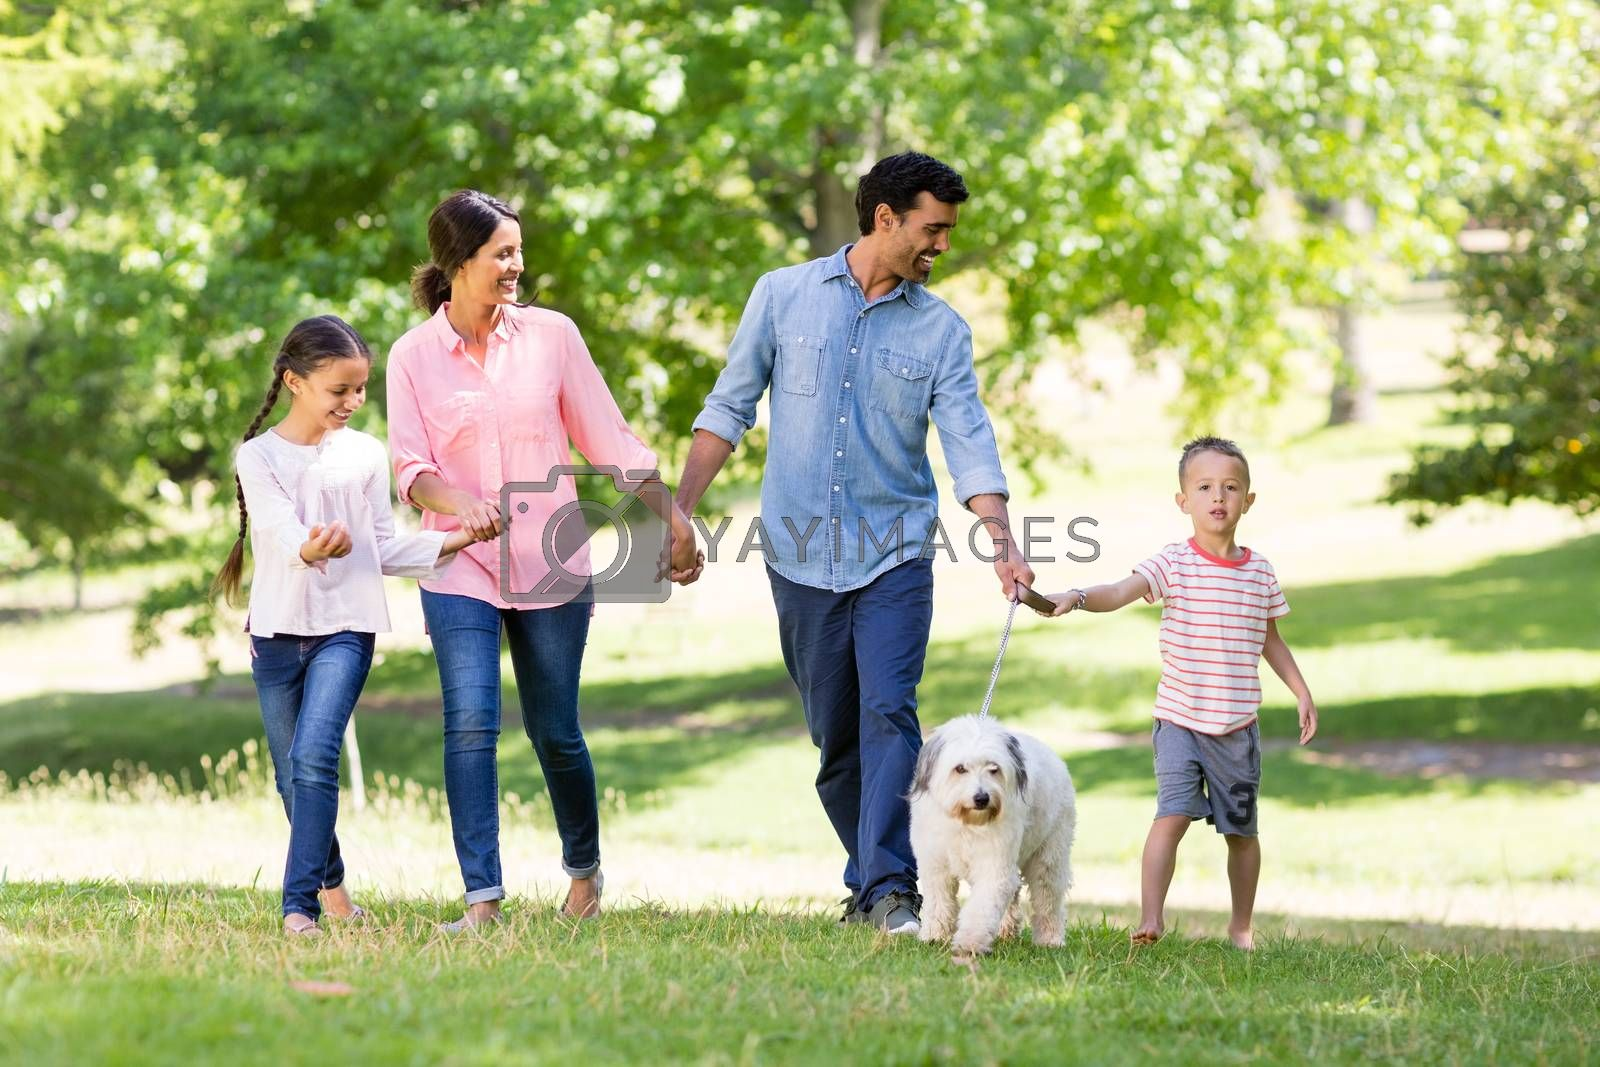 Happy family enjoying together with their pet dog in park